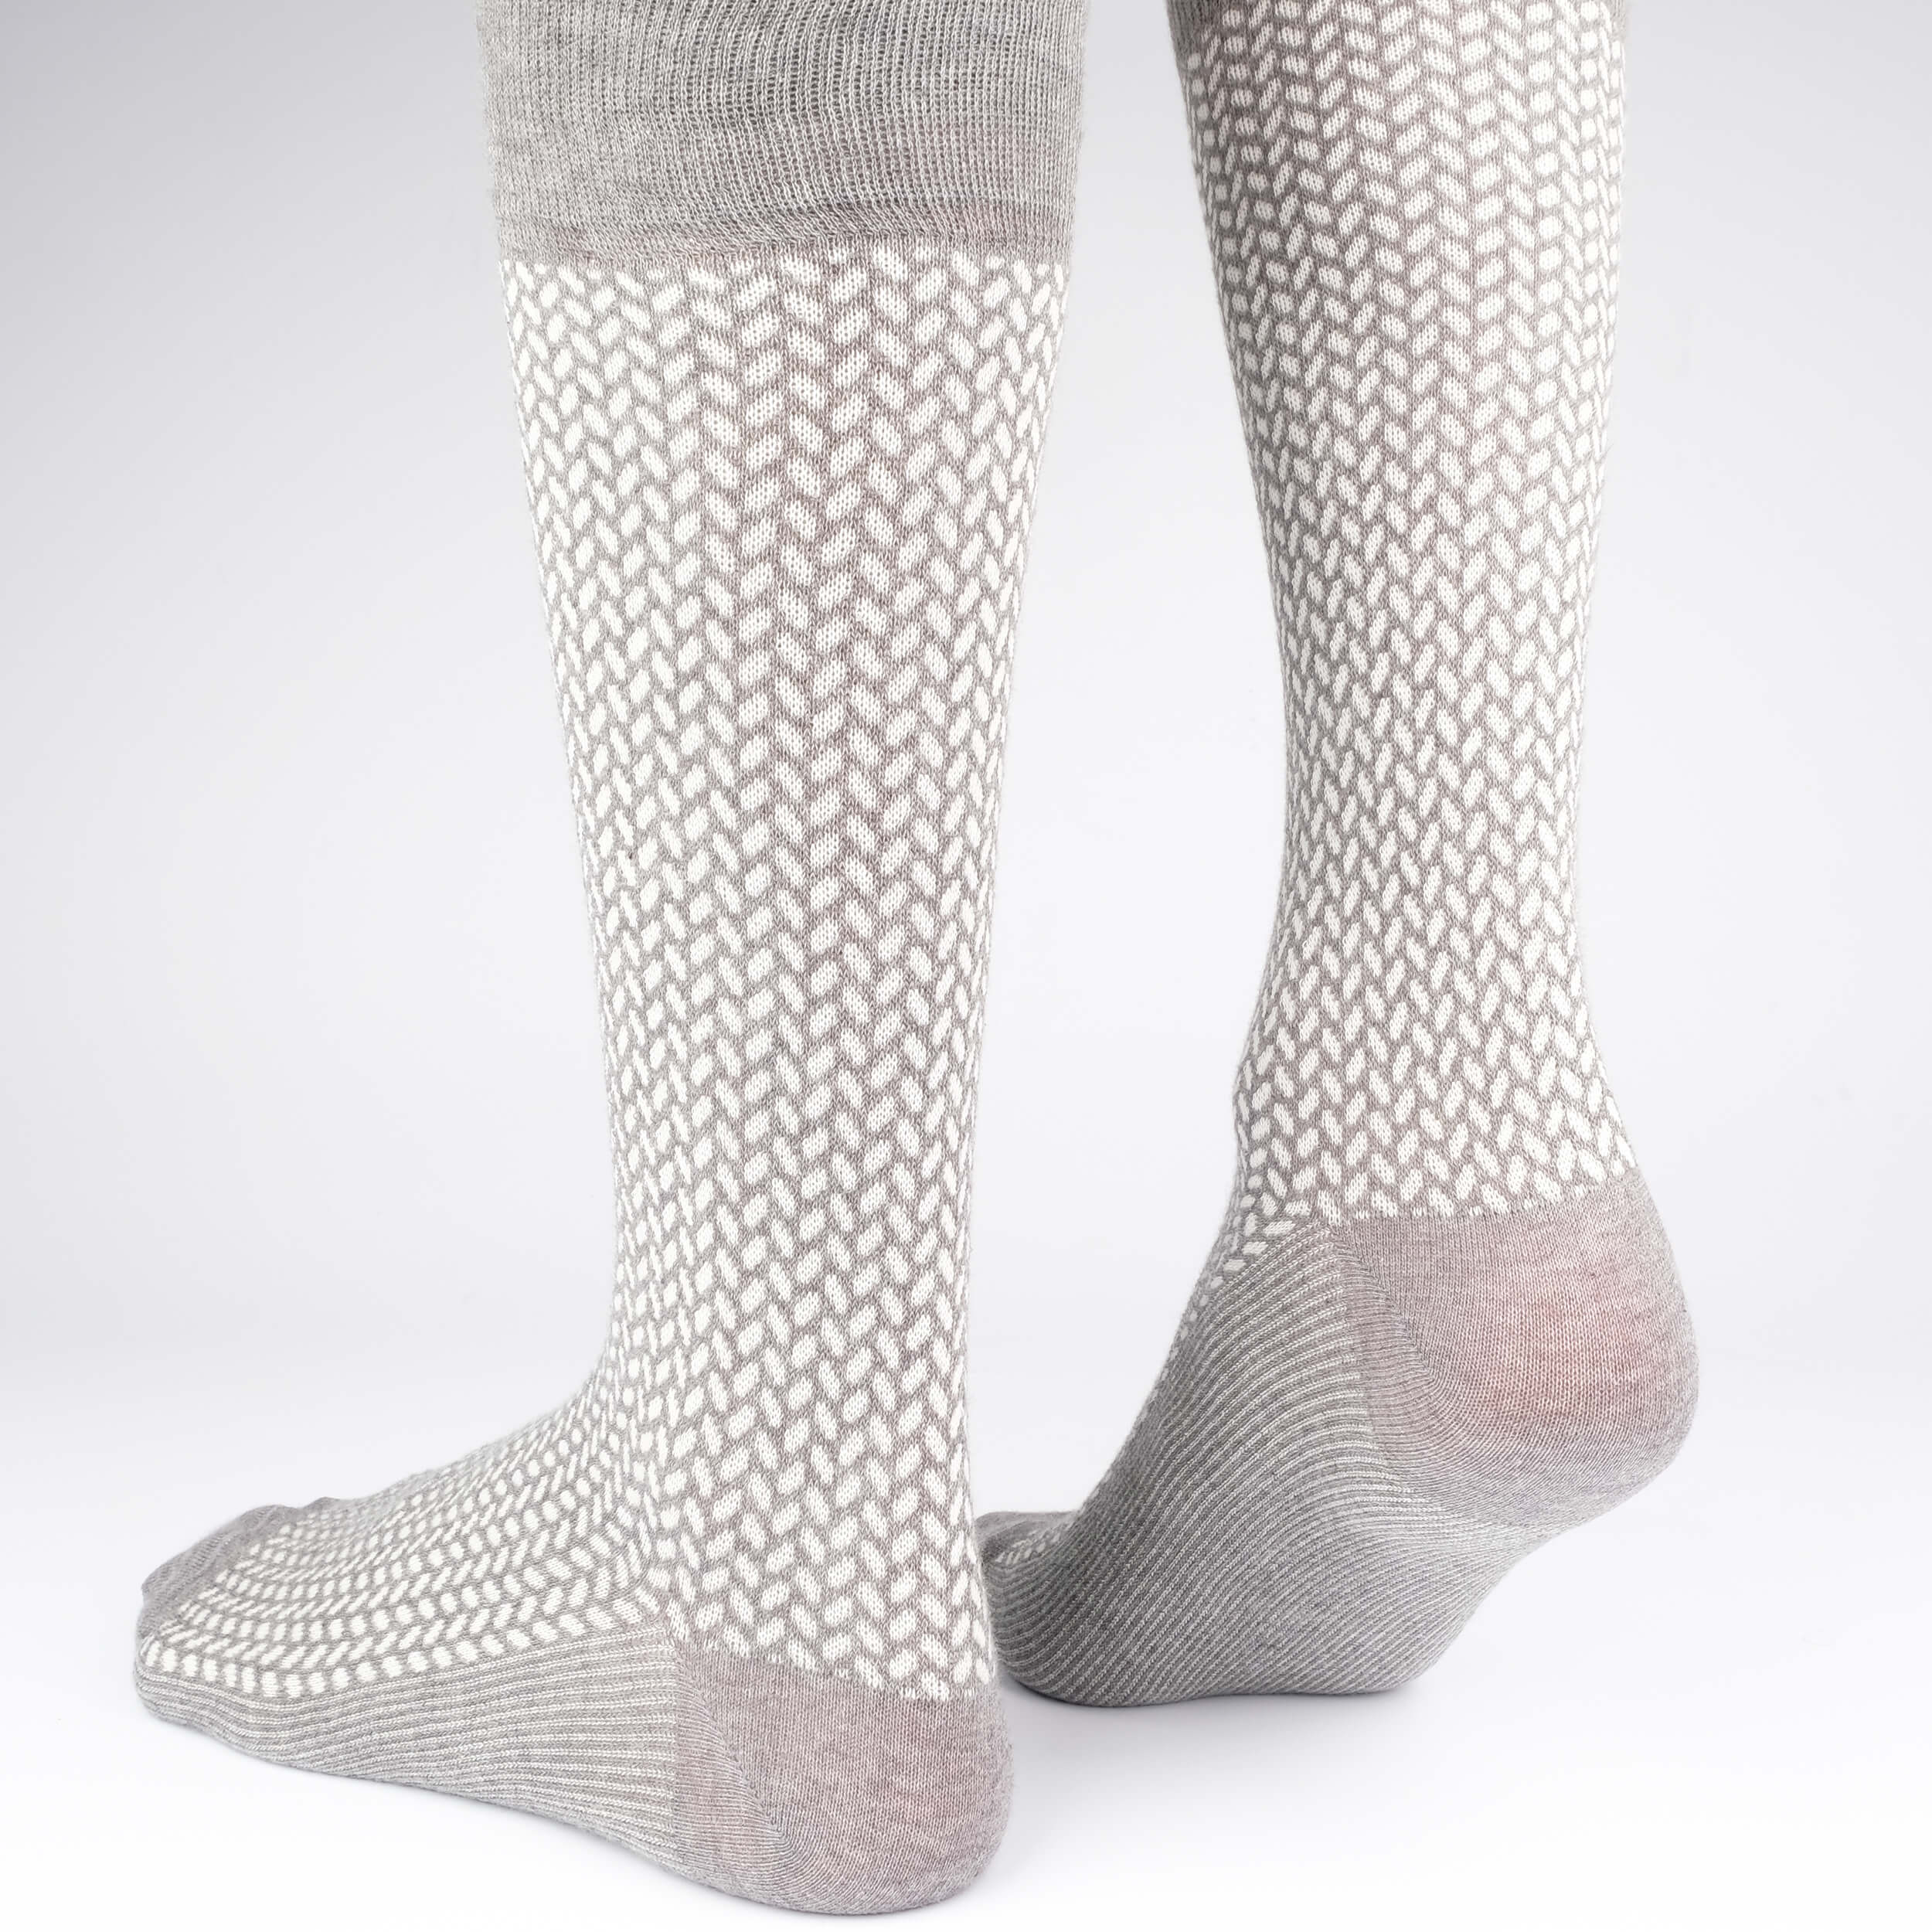 Mens Socks - Herringbone Blocks Men's Socks - Grey⎪Etiquette Clothiers